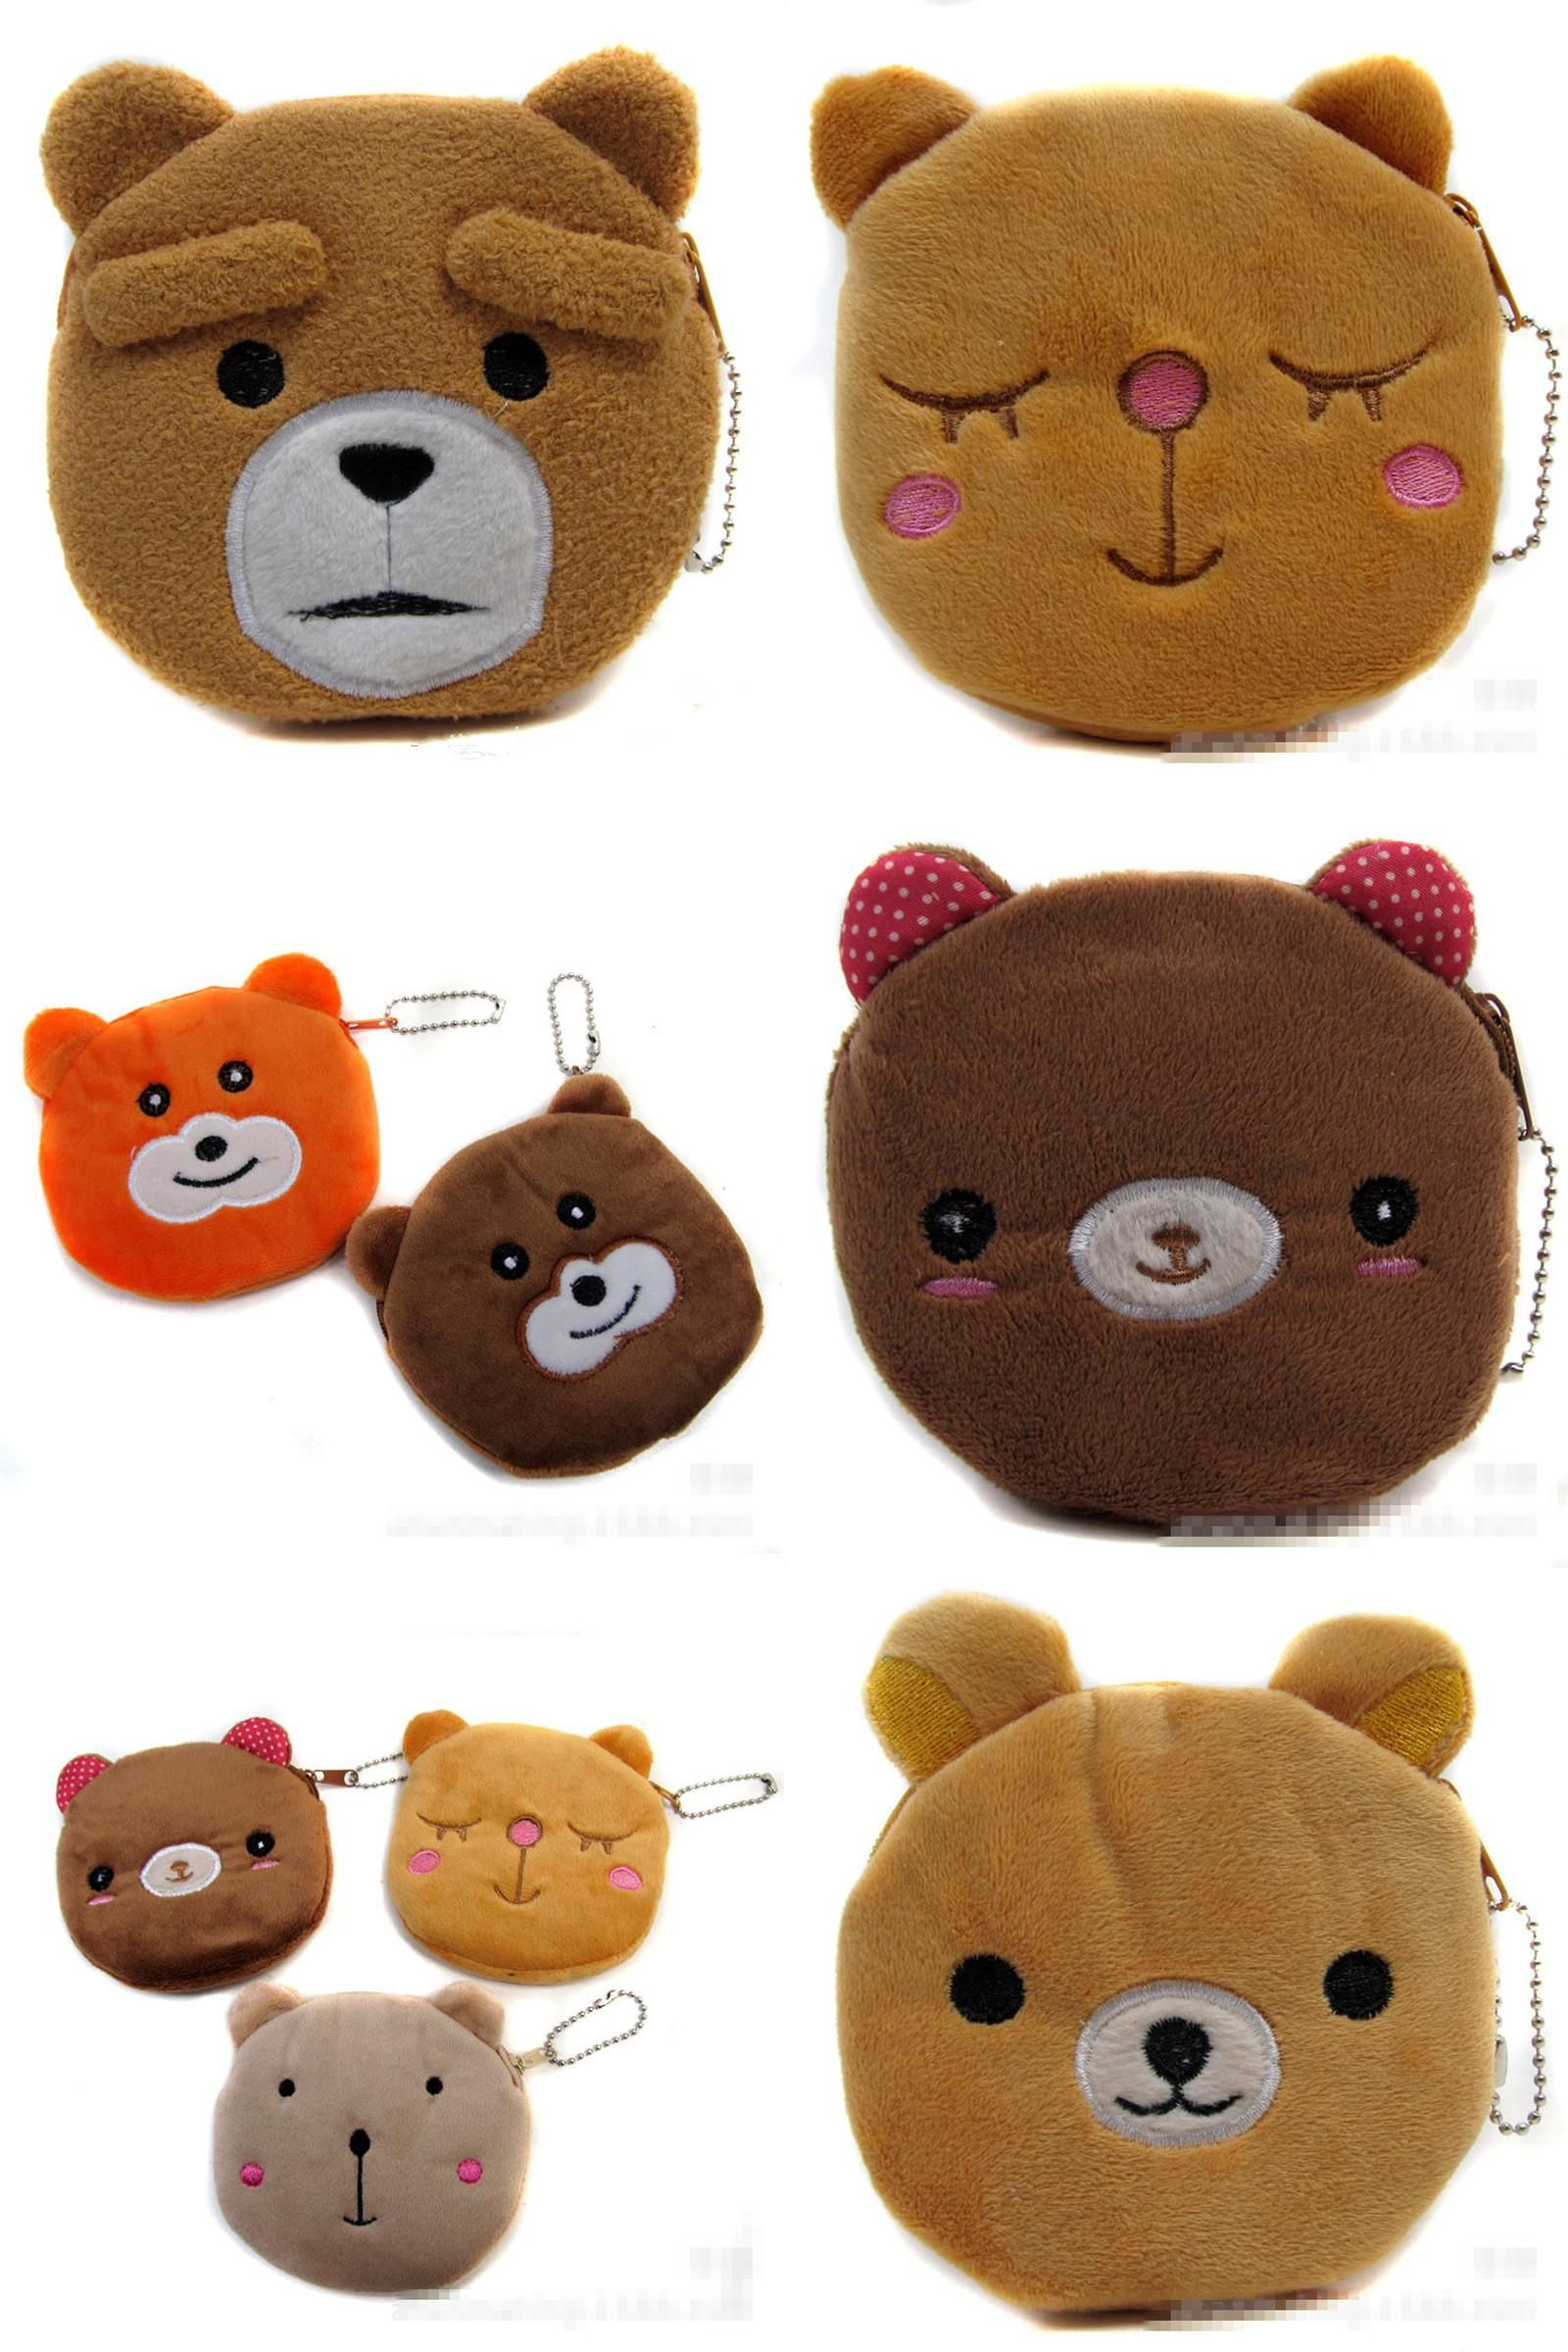 f4e210699a5cd [Visit to Buy] New Animals Small Coins Bag Girls Mini Bear Coin Purse  Change Wallet Women Key Card Holder Children Kids Gifts 8styles  #Advertisement